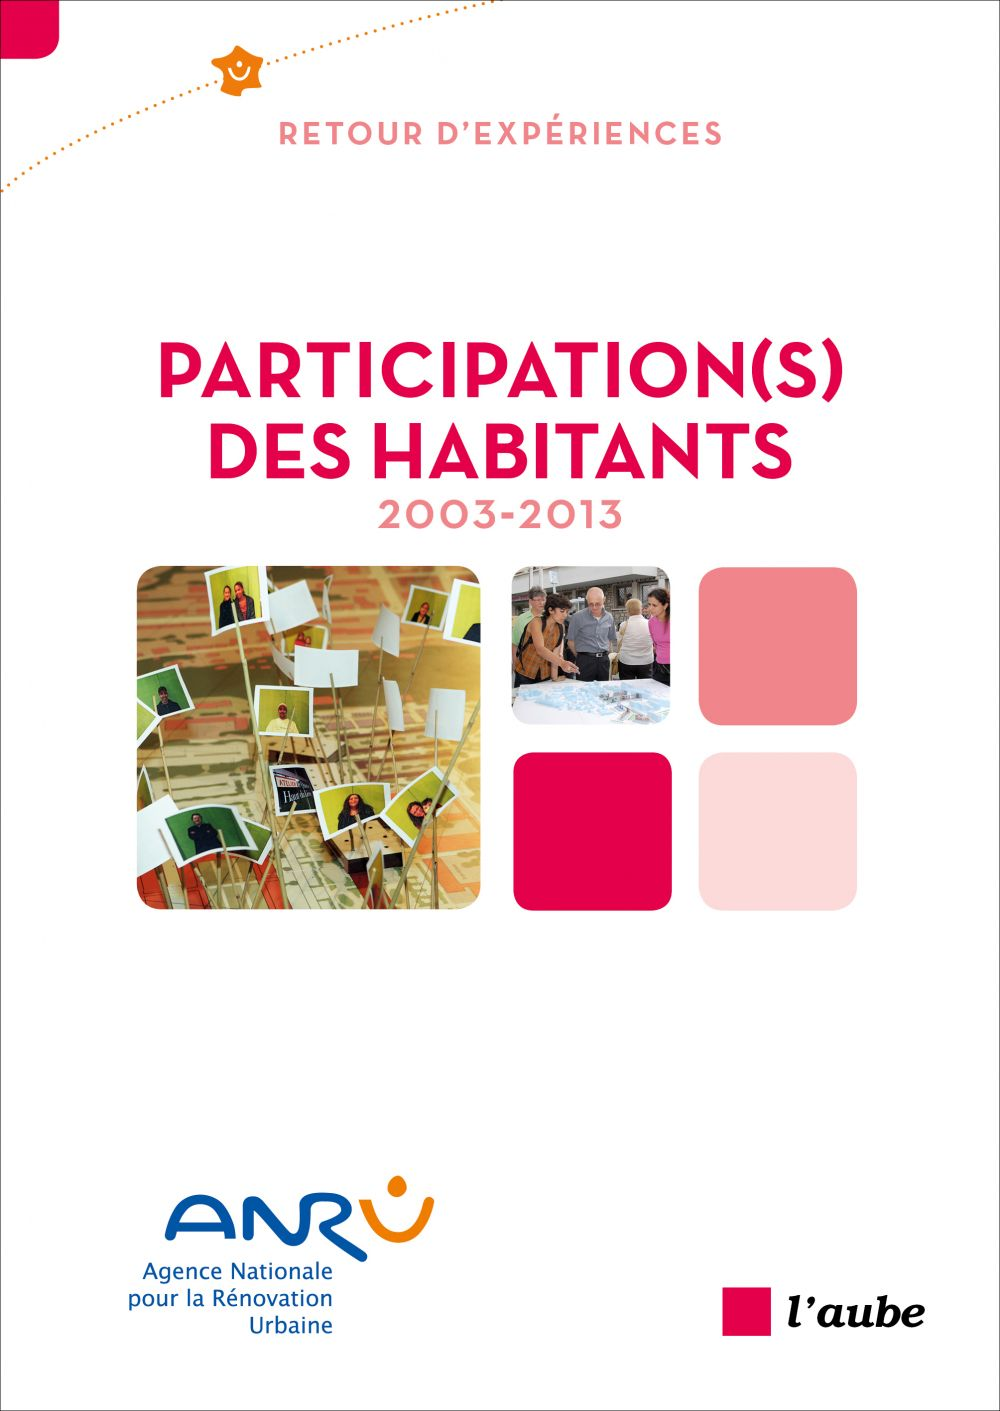 Participation(s) des habitants 2003-2013